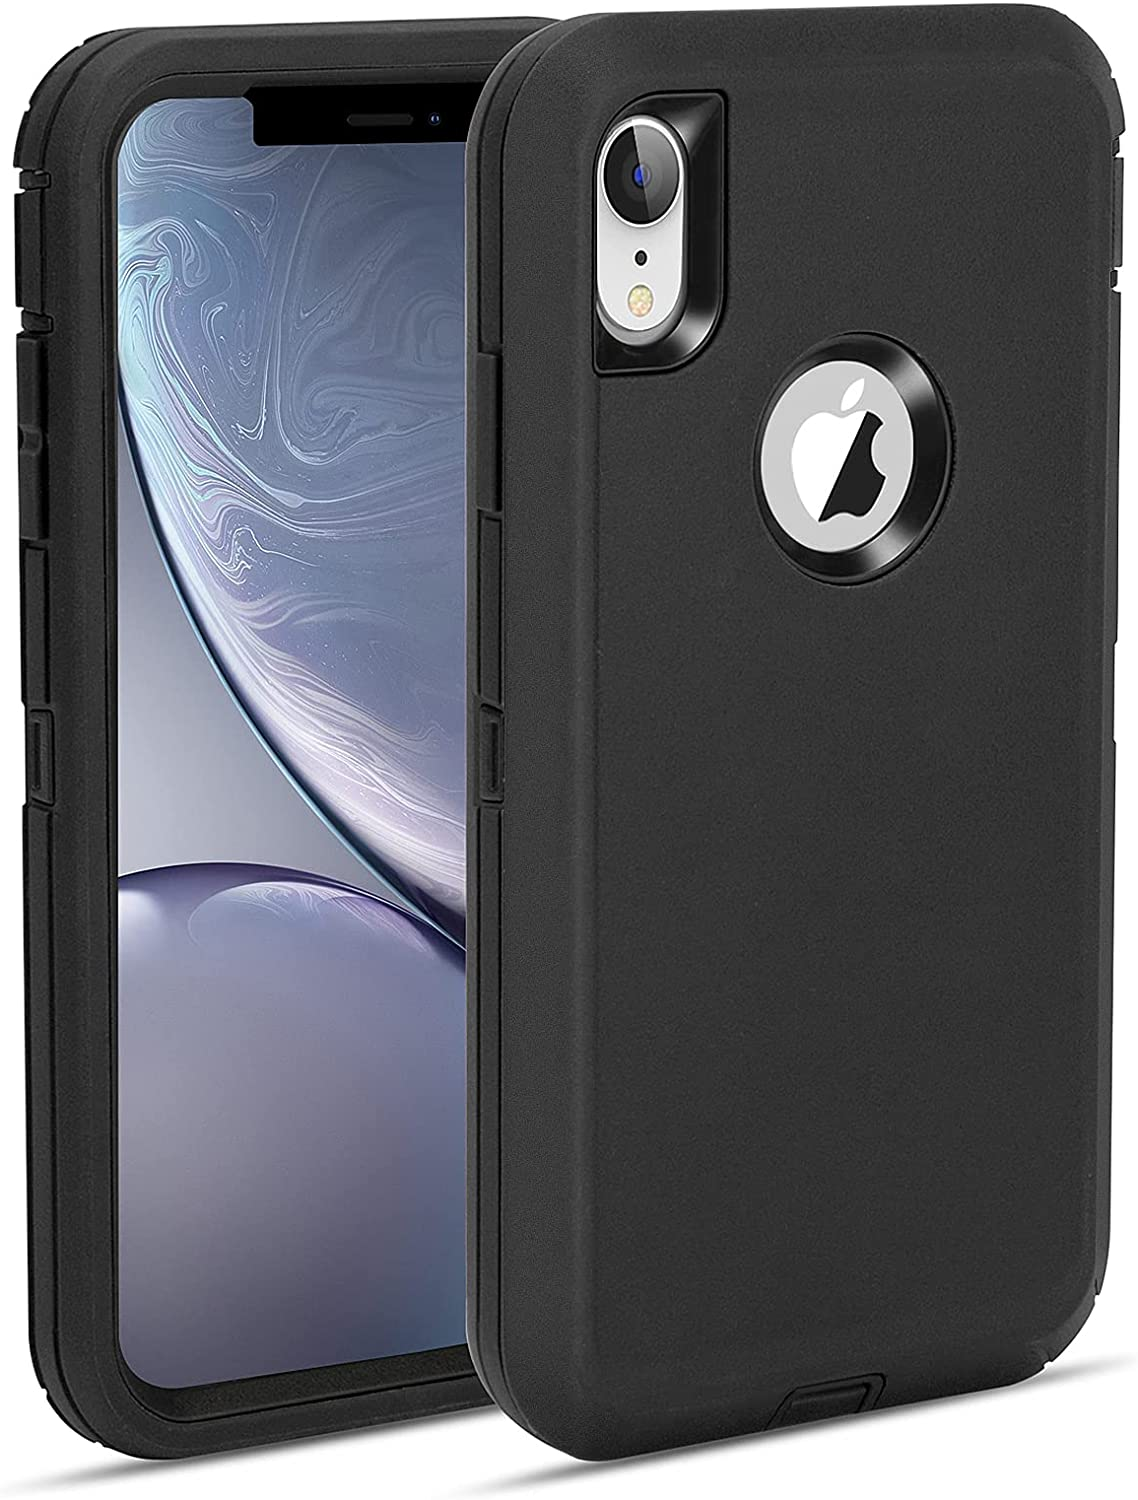 MAXCURY foriPhone XR Case, Heavy Duty Shock Absorption Full Body Protective Case Hard PC Bumper + Soft TPU Back Cover for iPhone XR 6.1 inch Not Built in Screen Protector (Black)